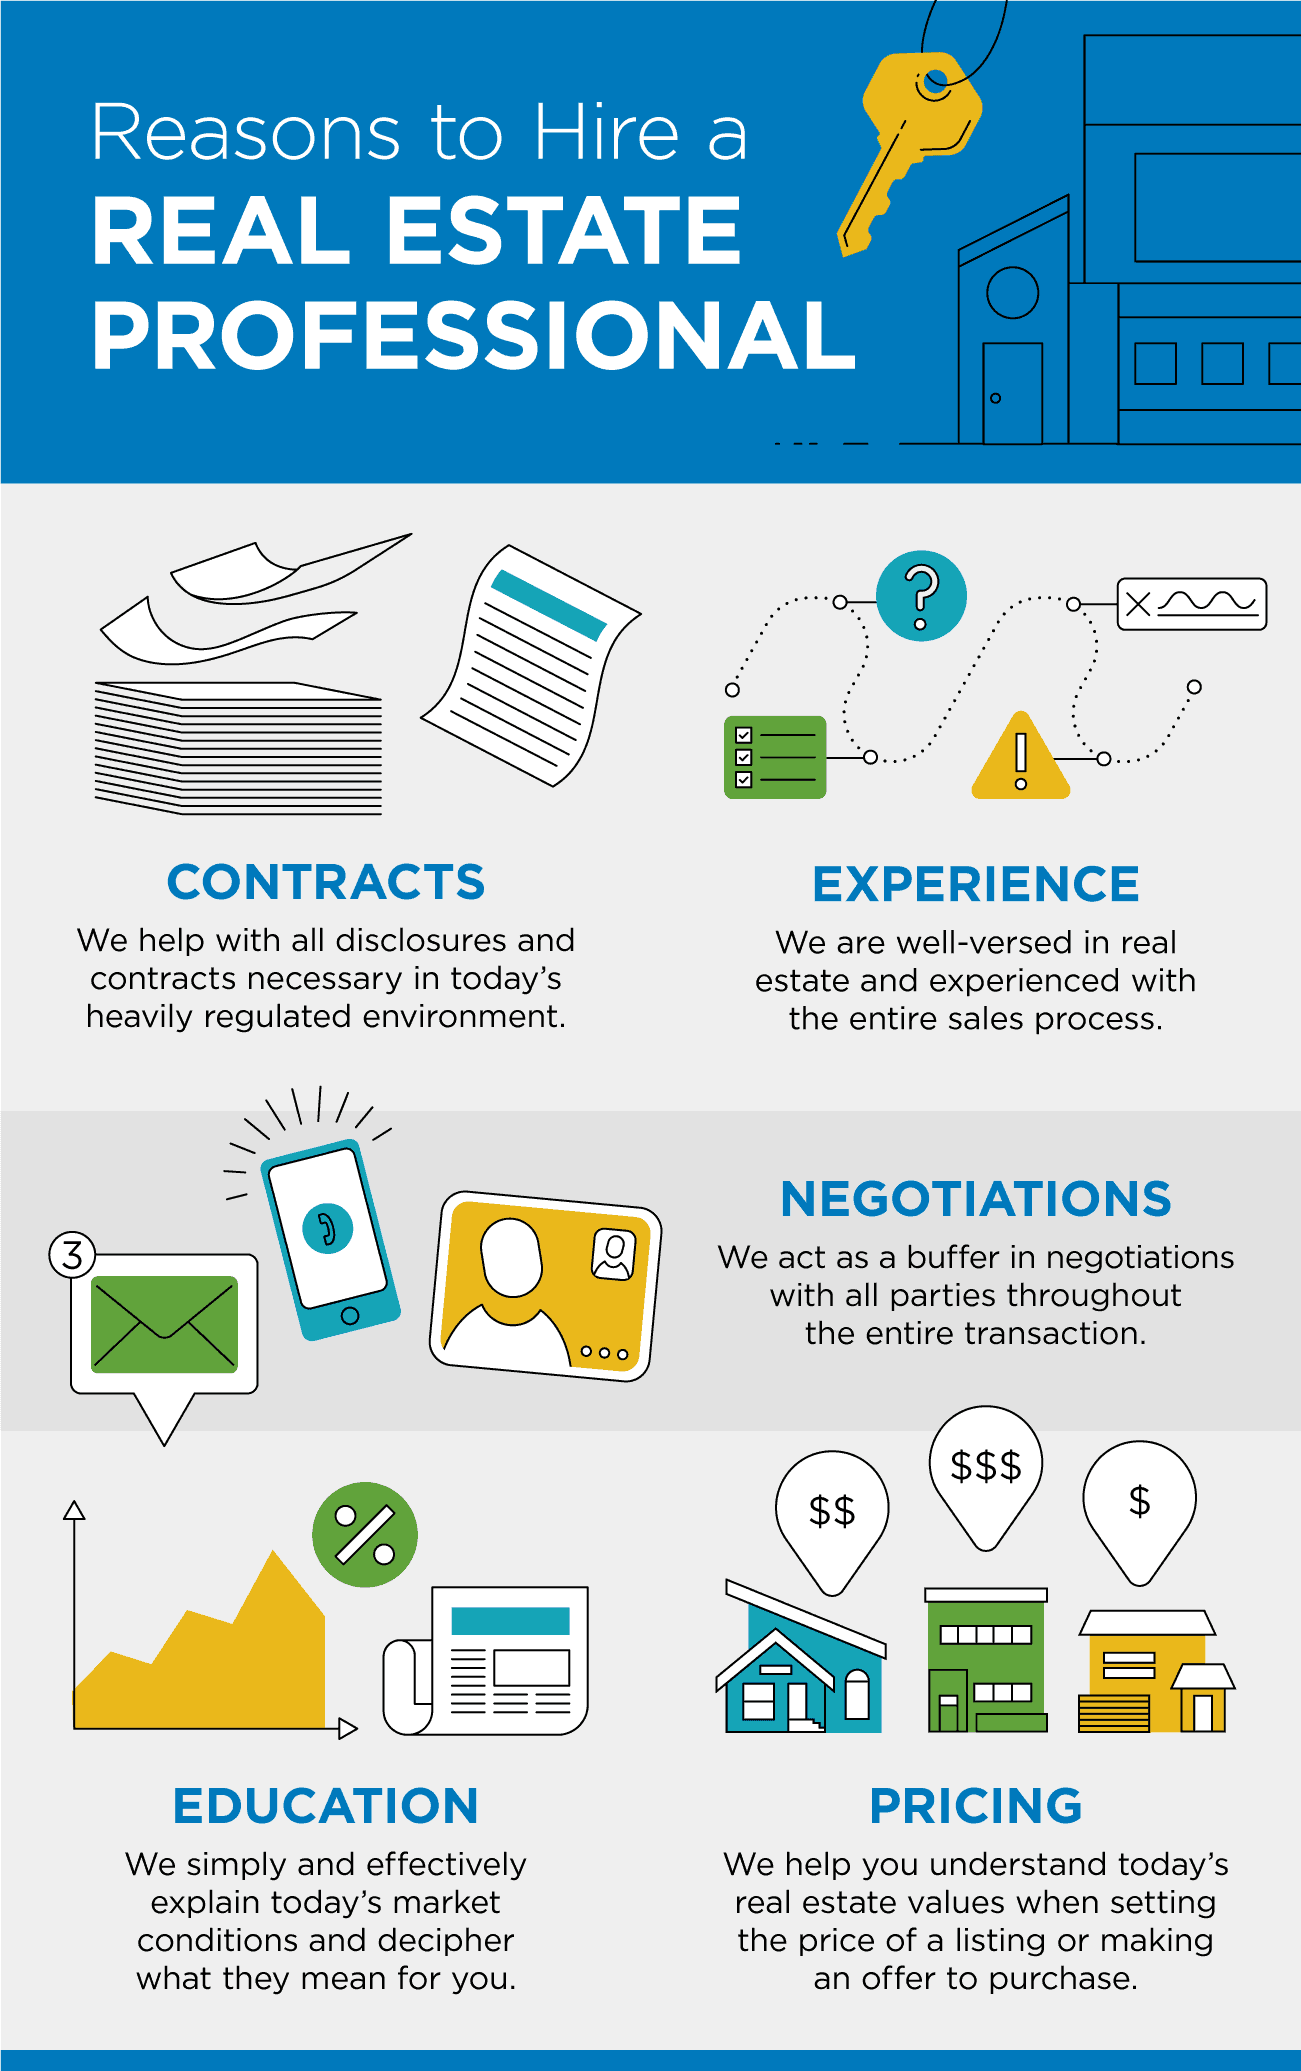 Reasons to Hire a Real Estate Professional [INFOGRAPHIC] 20210108-MEM